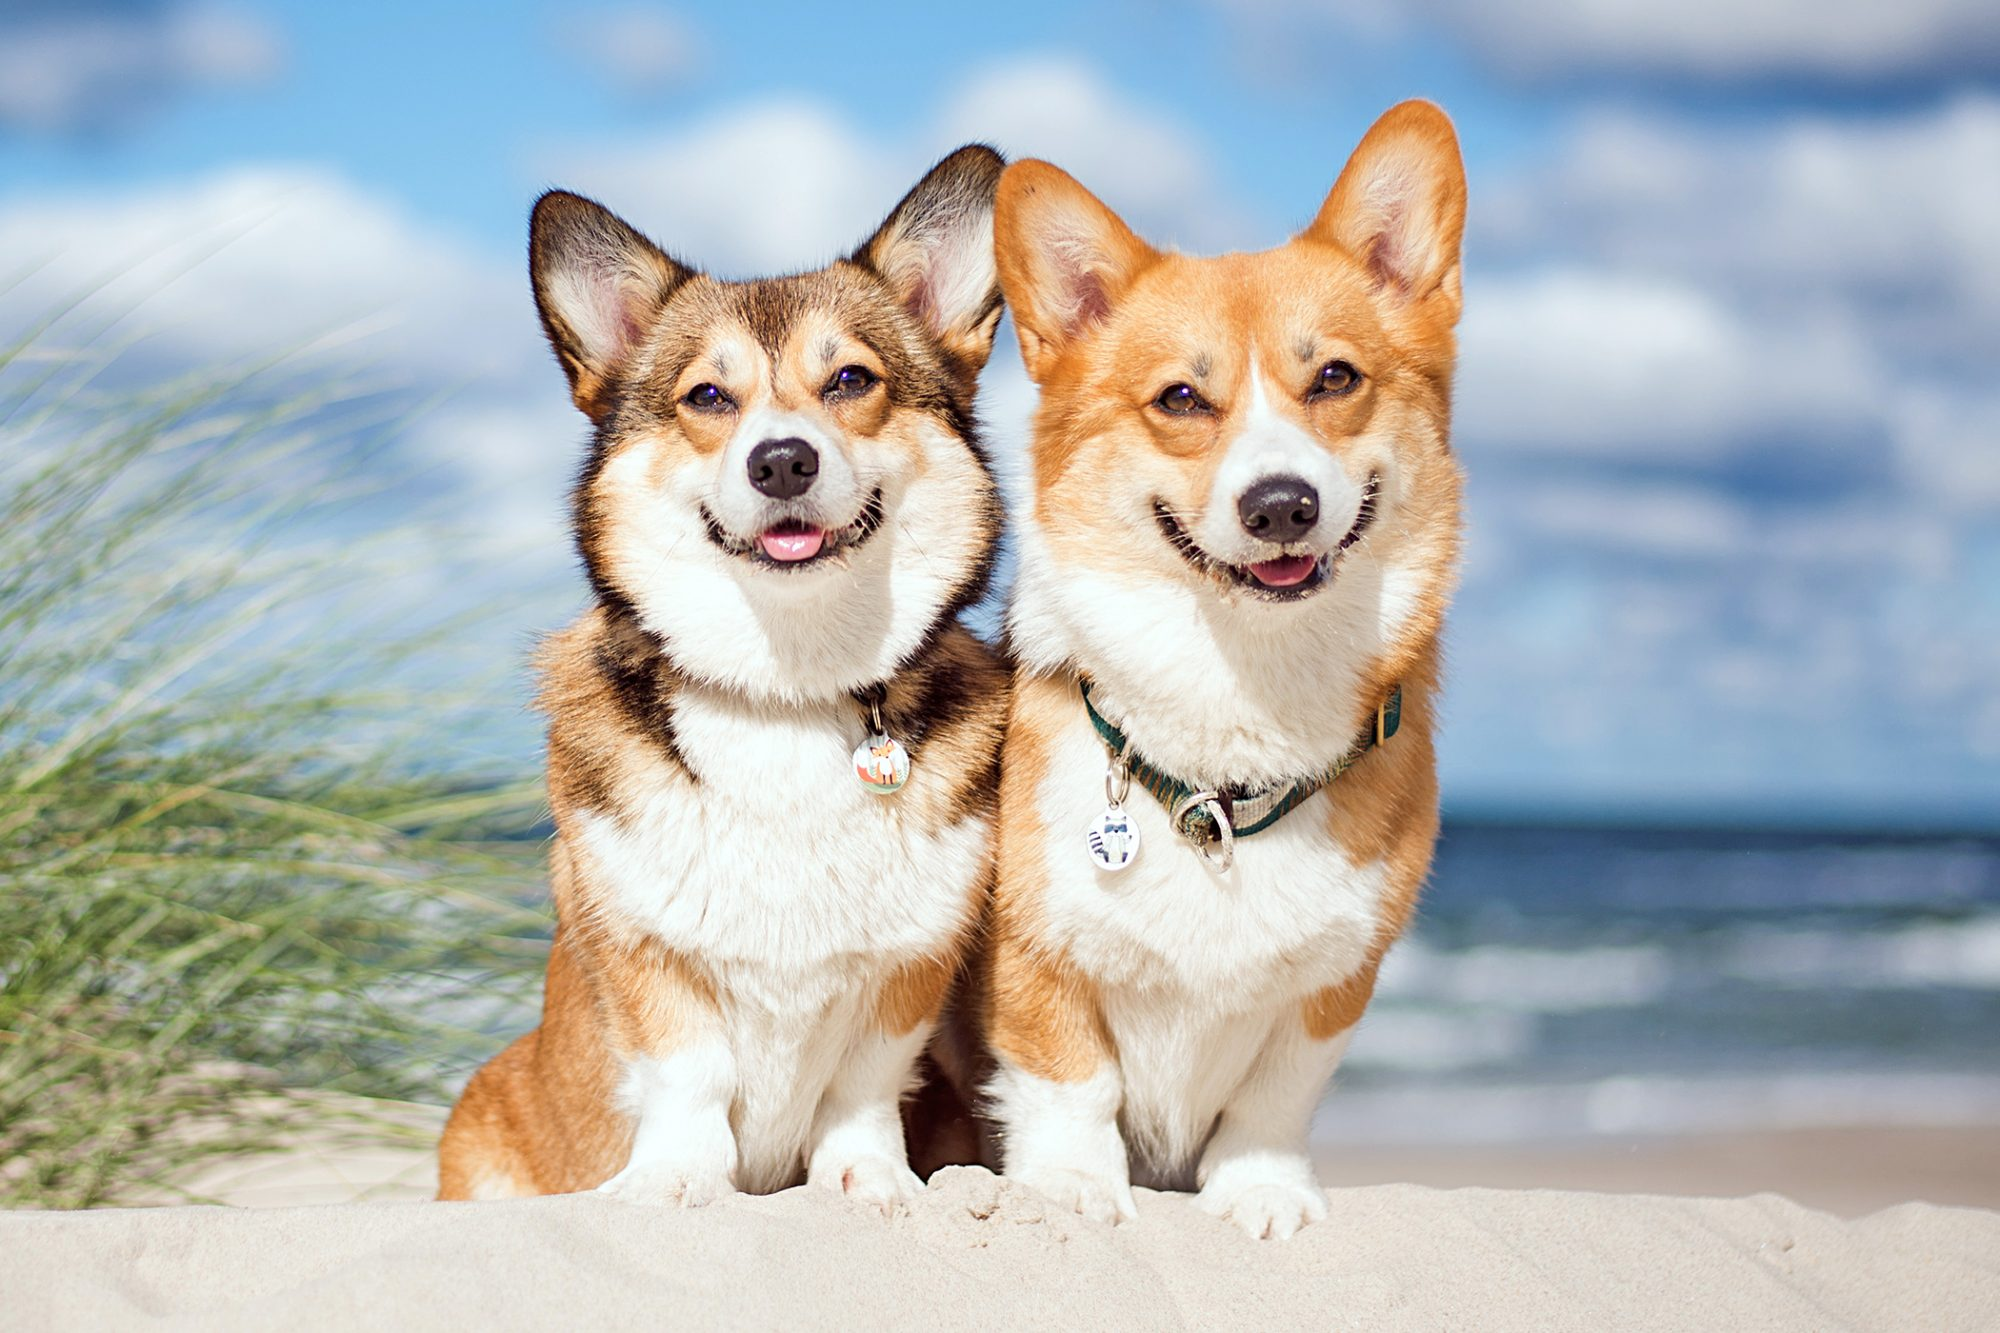 two pembroke welsh corgis sitting together on a beach